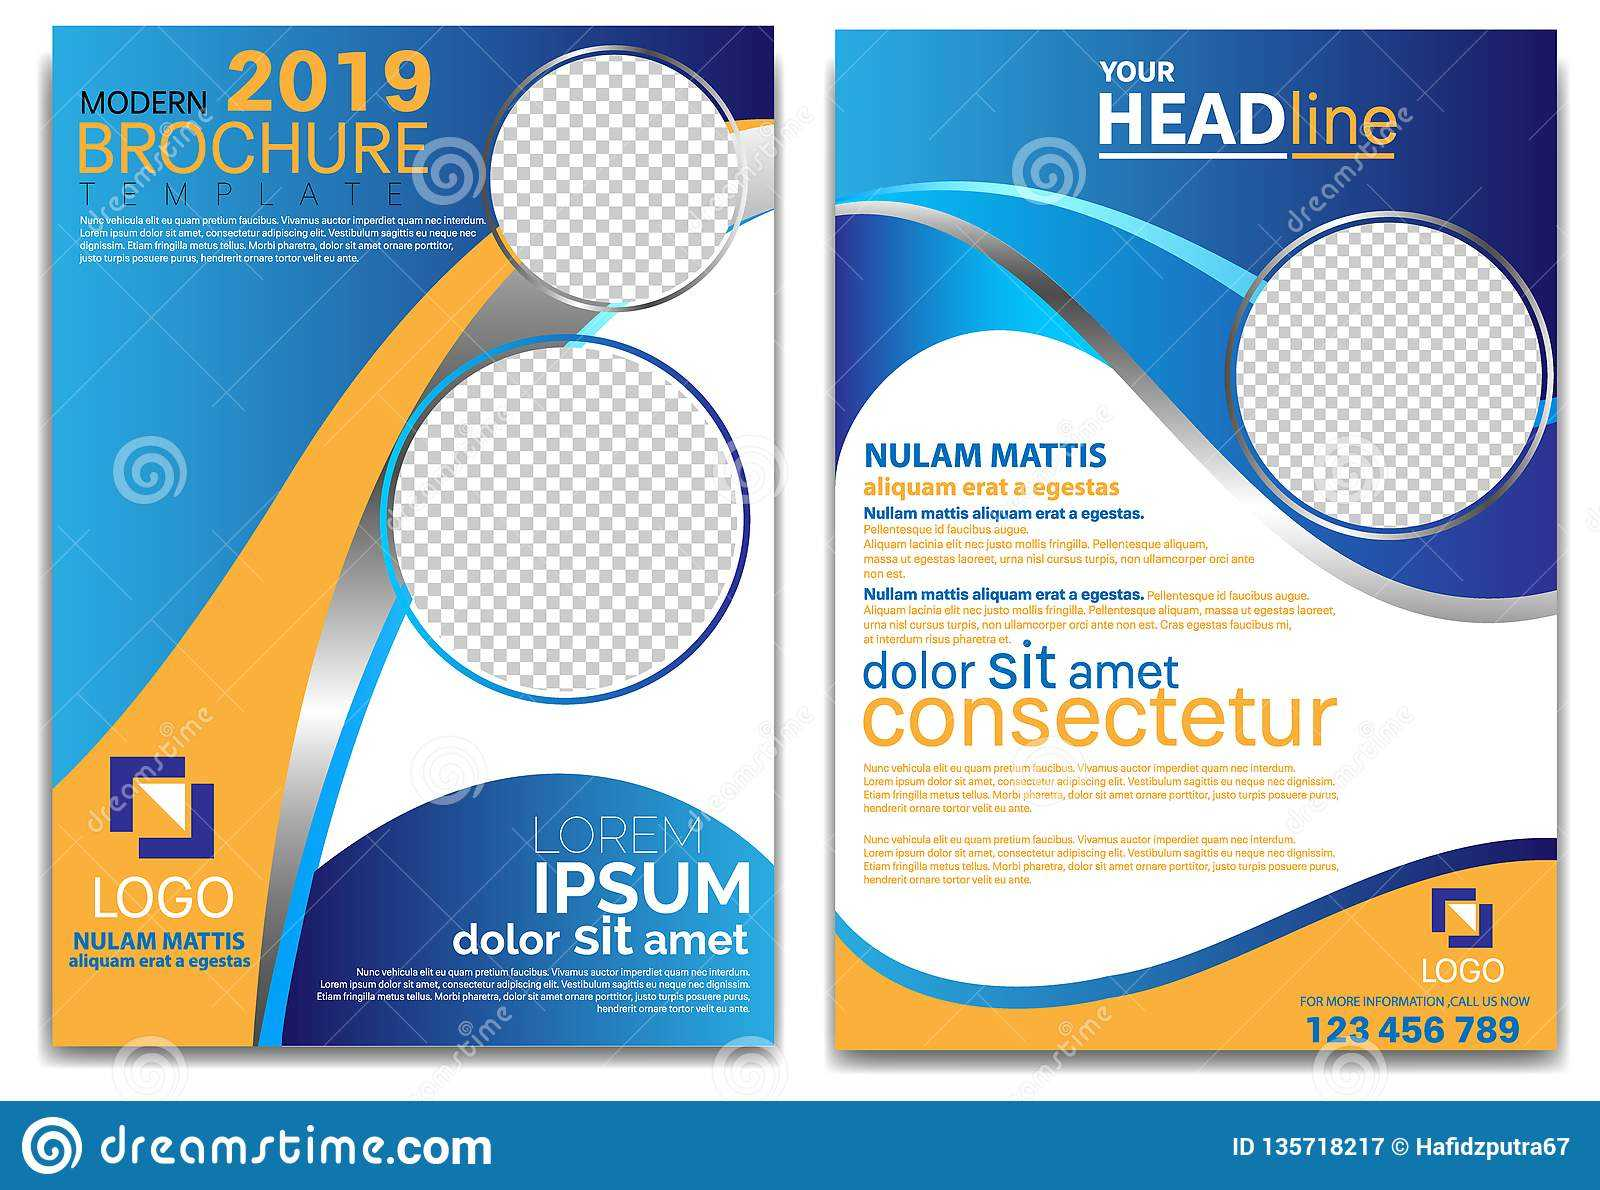 Modern Brochure Template 2019 And Professional Brochure Throughout School Brochure Design Templates